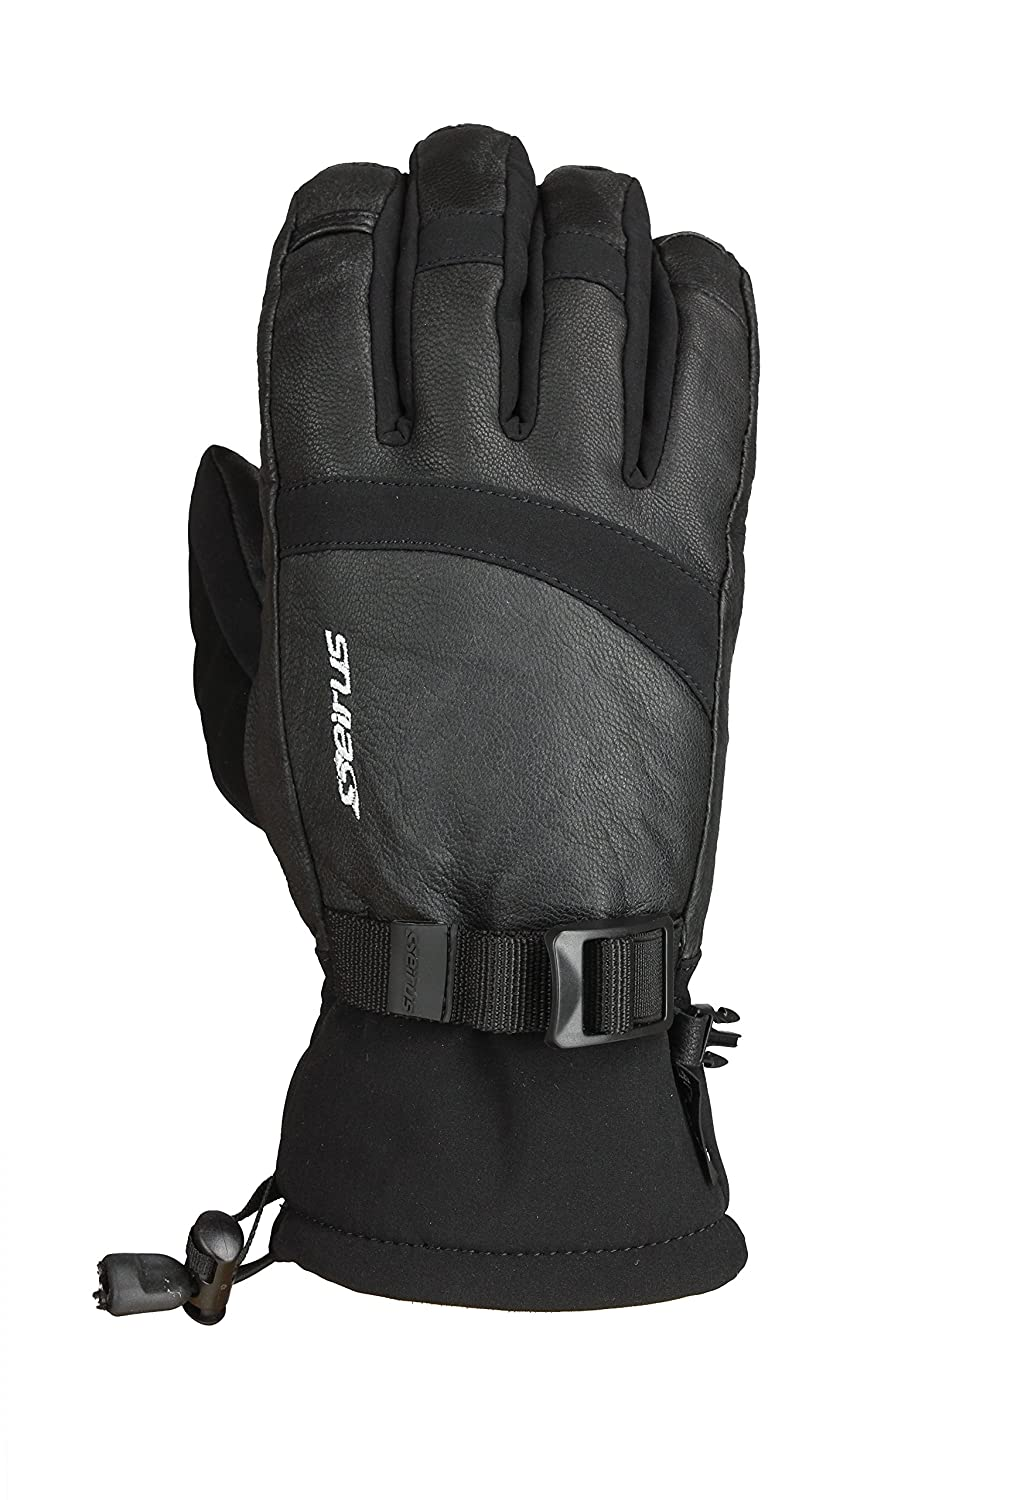 Relaxed Fit Seirus Innovation 1401 Mens Softshell Signal Waterproof Polartec Cold Weather Winter Glove